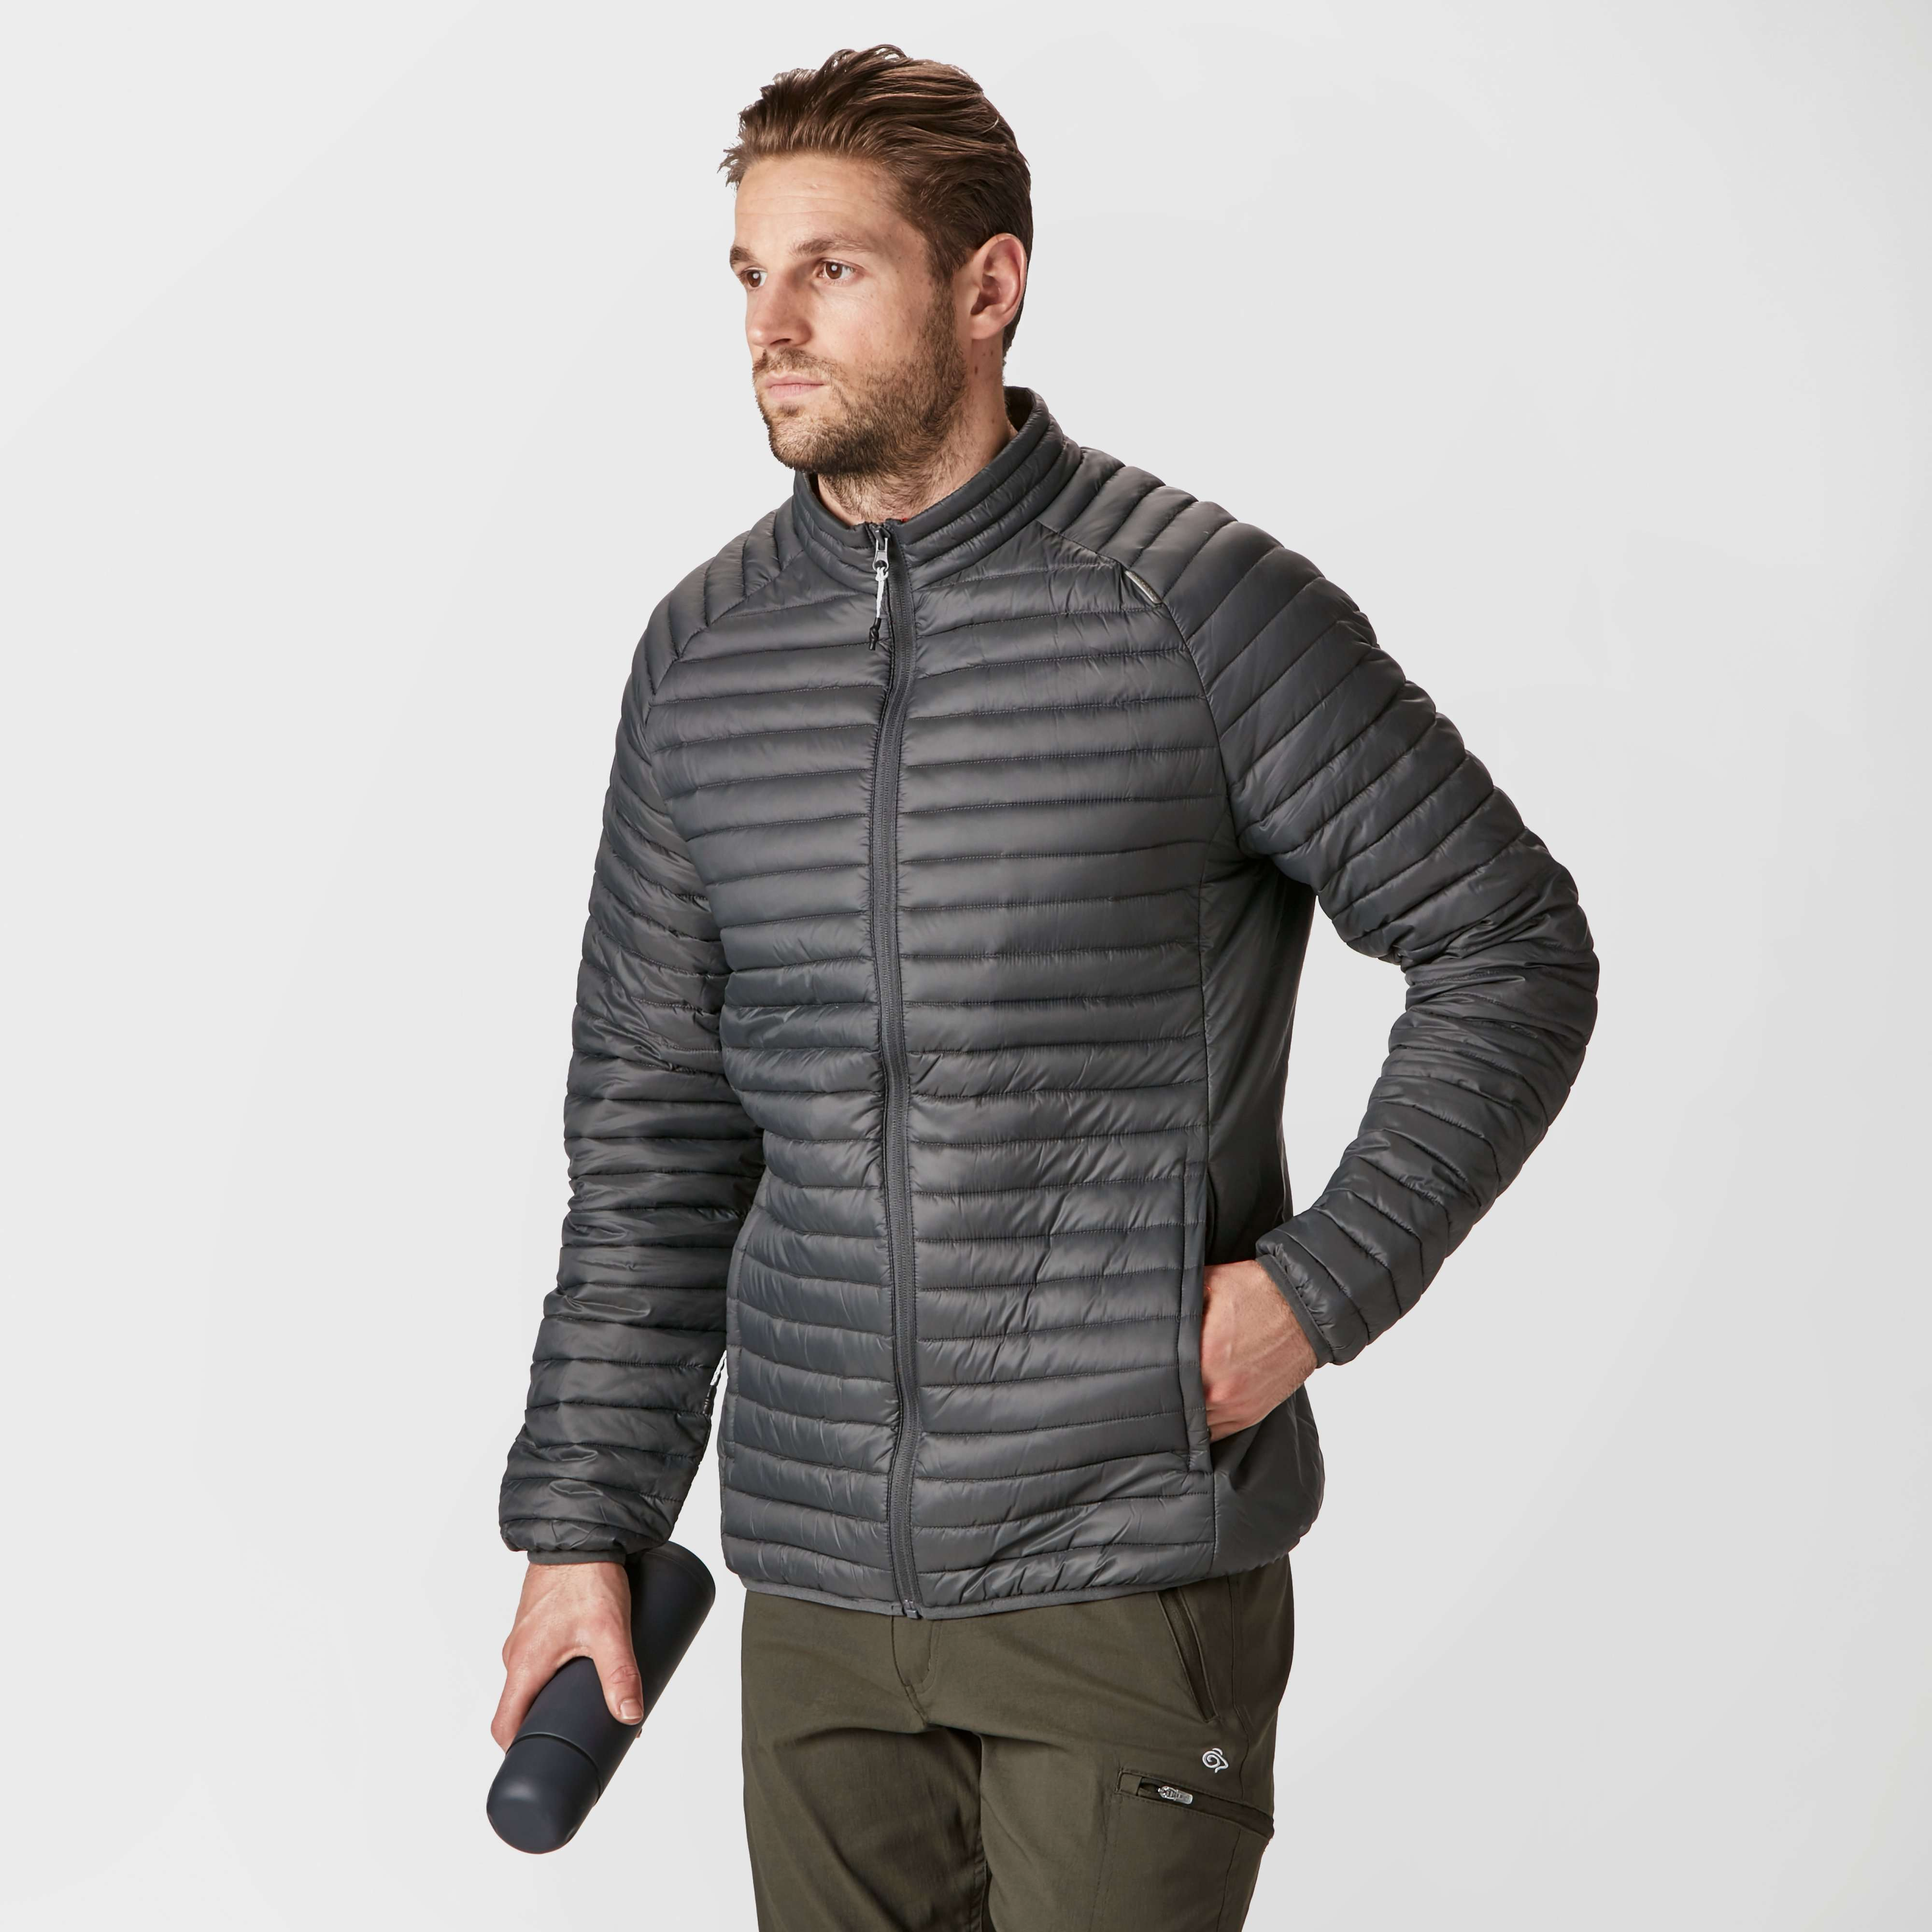 CRAGHOPPERS Men's Venta Lite II Jacket